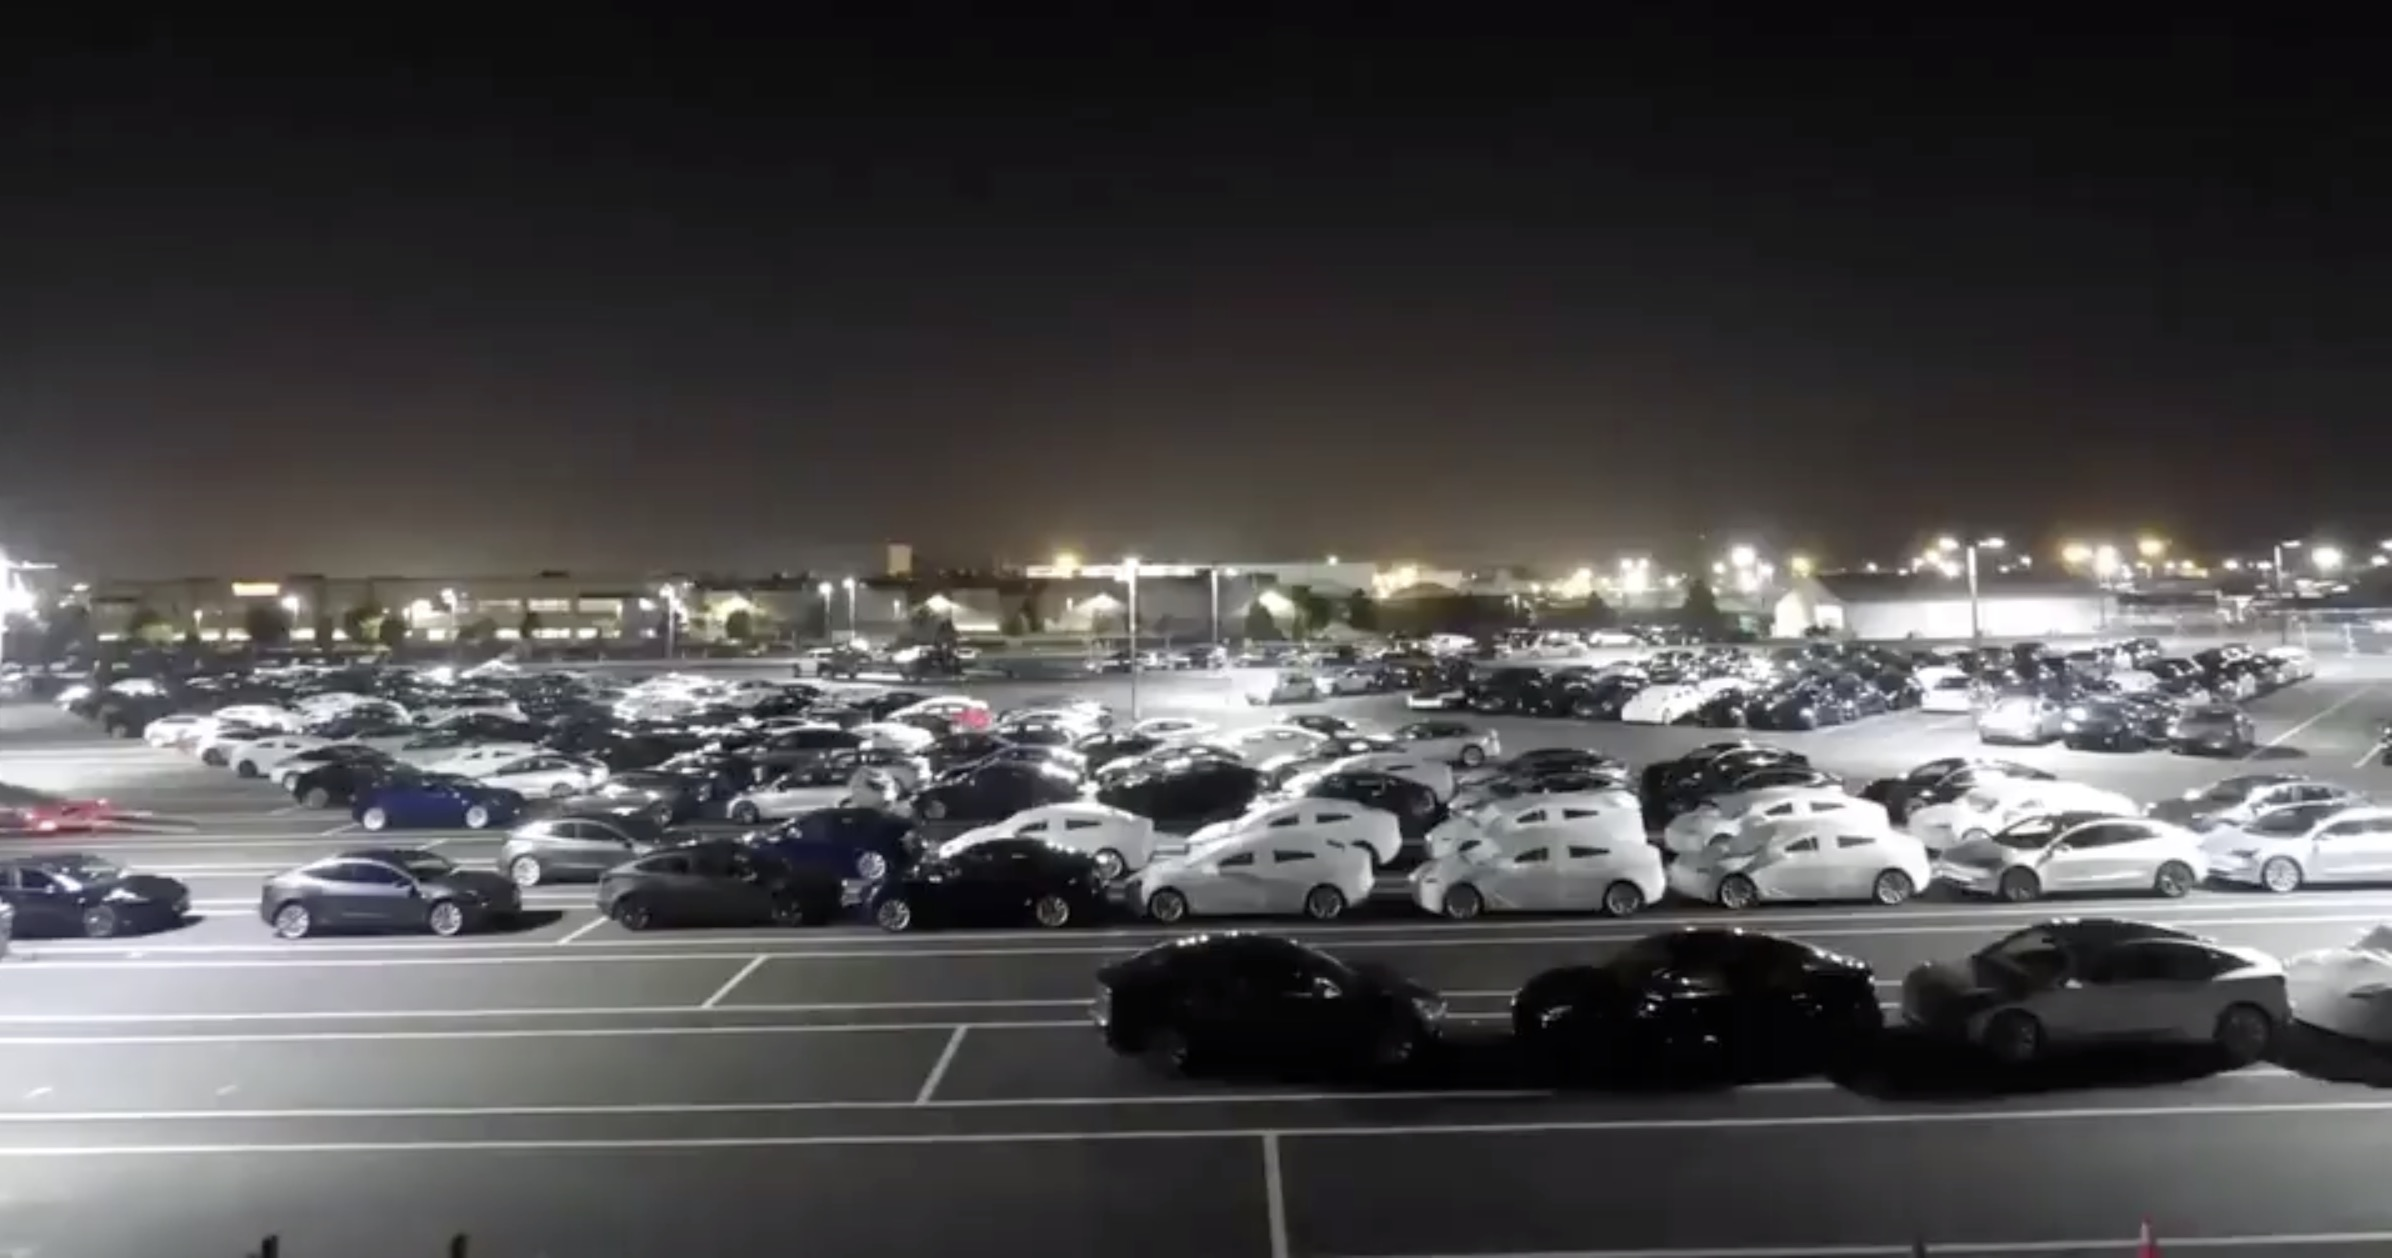 Tesla is on track for incredible production record this quarter albeit being behind on Model 3 goal